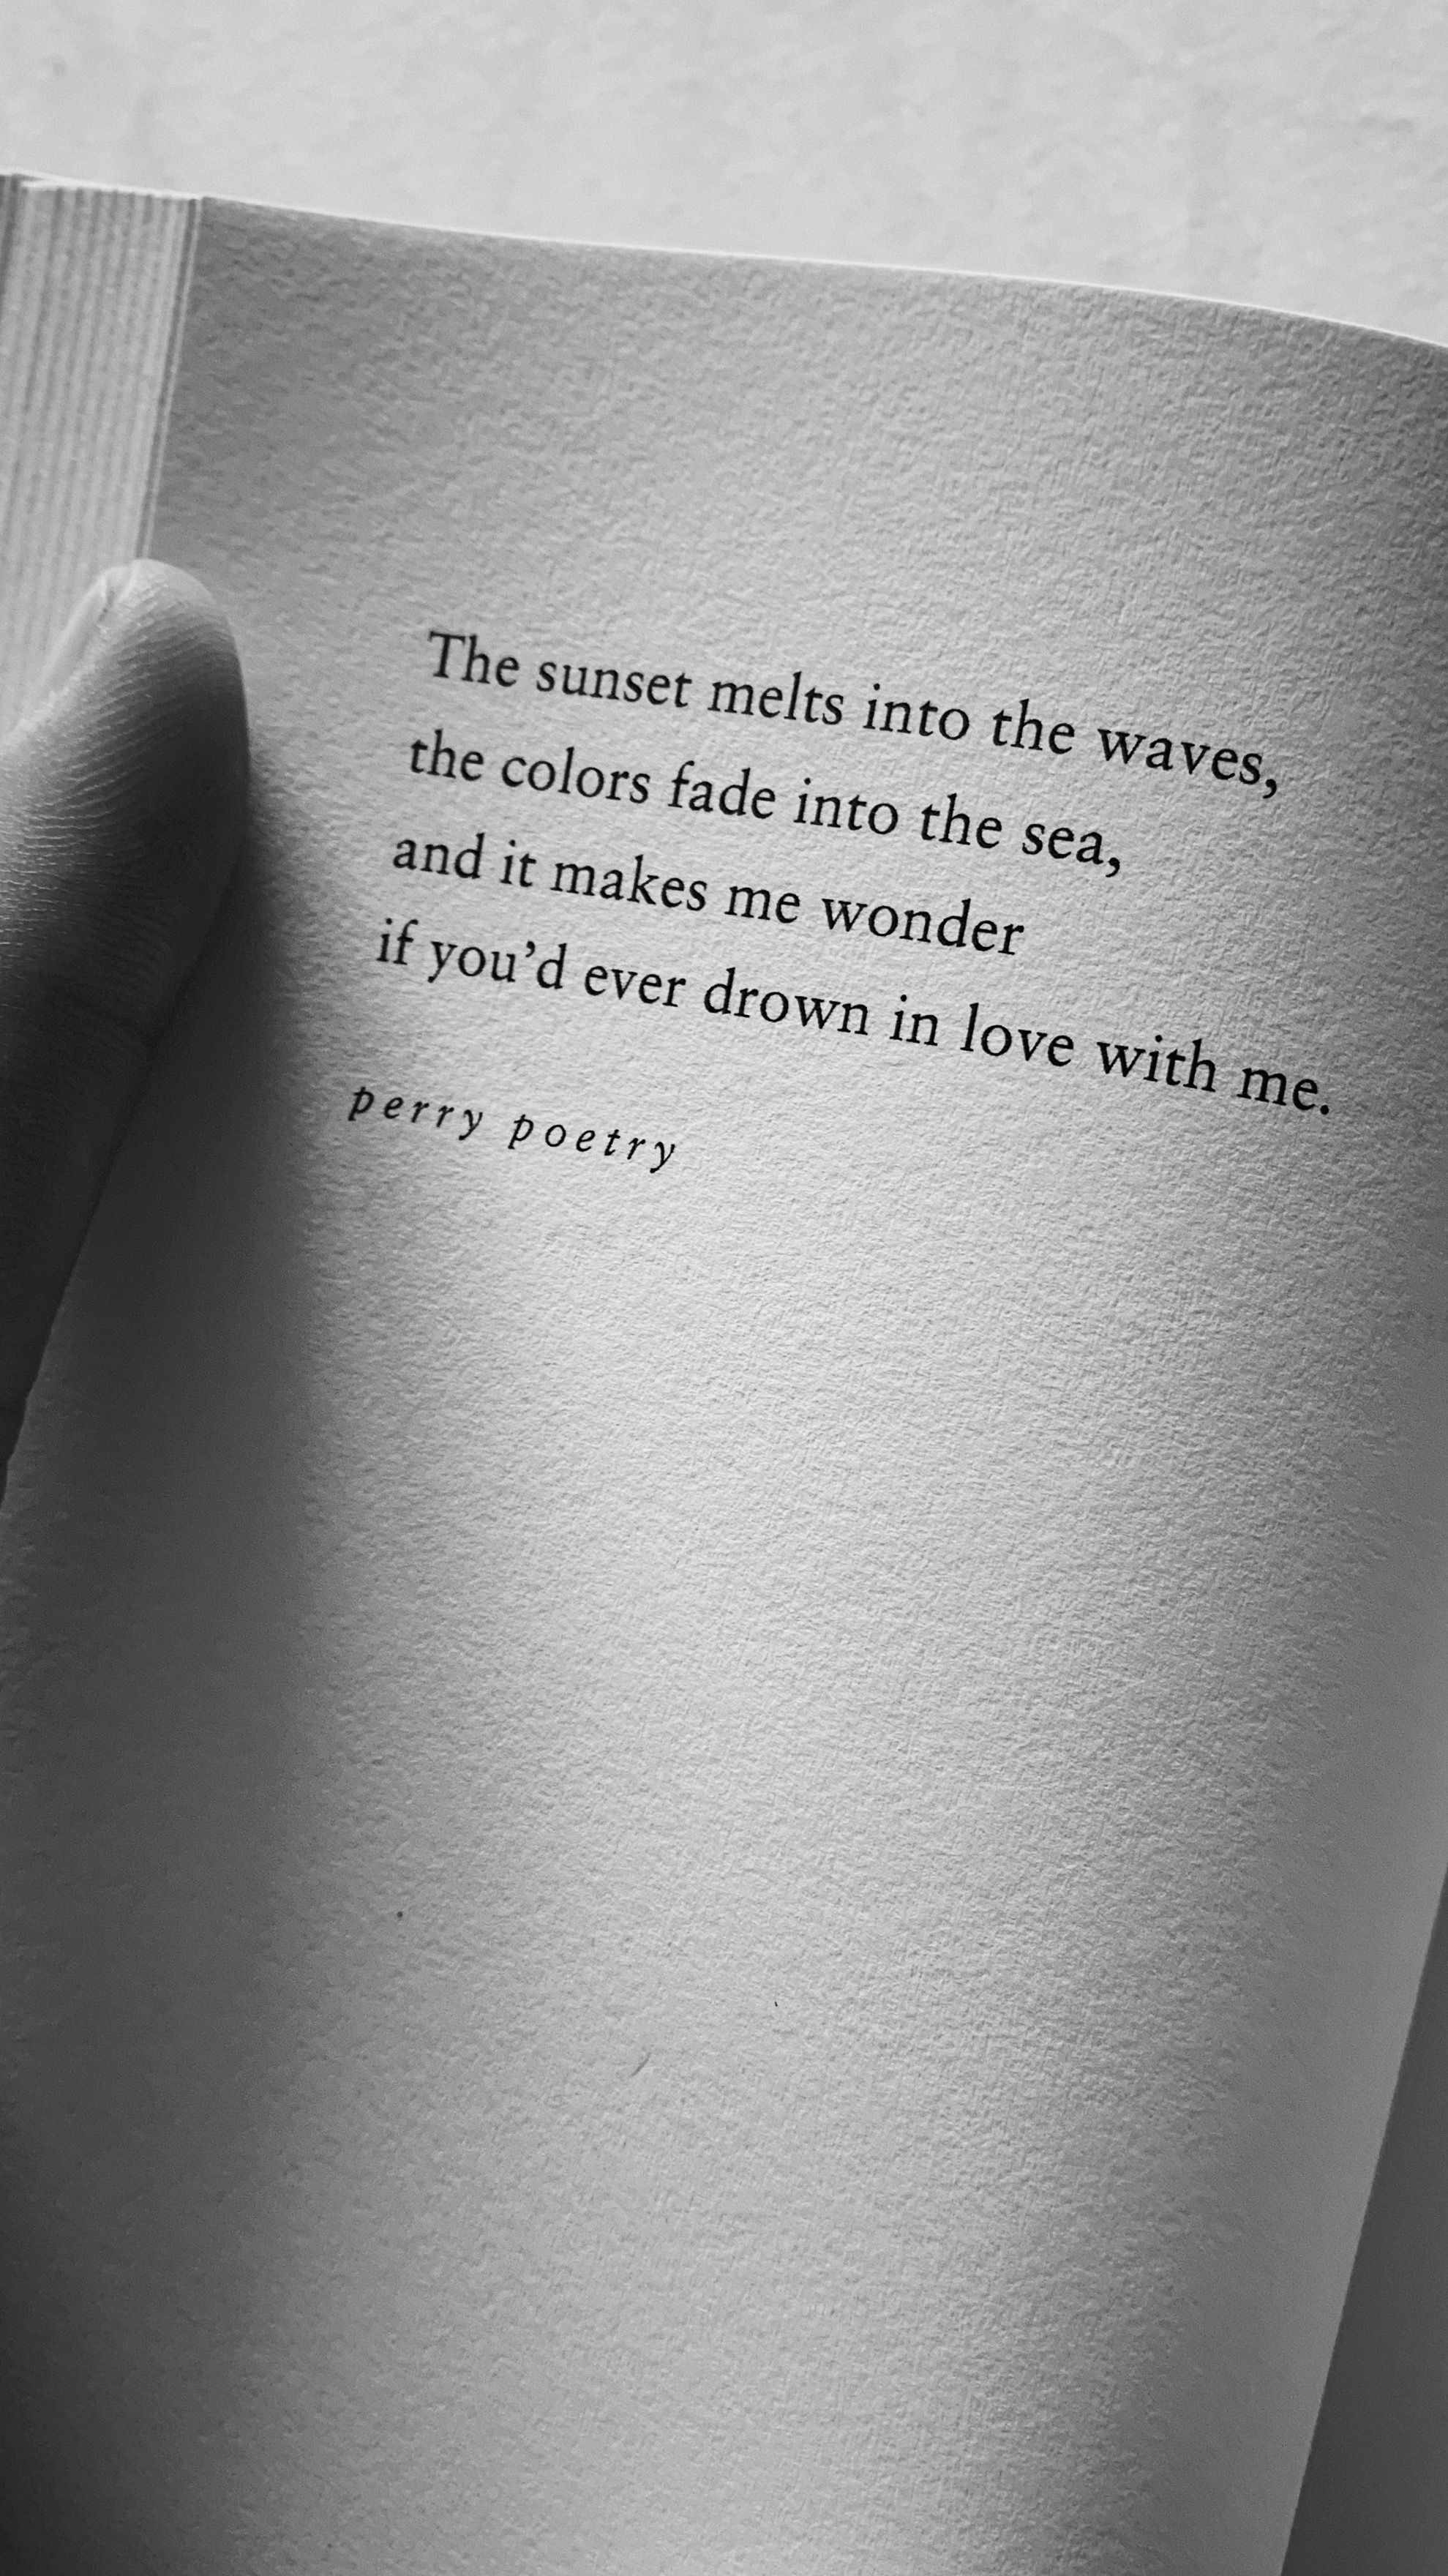 Follow Perrypoetry On Instagram For Daily Poetry Poem Poetry Poems Quotes Love Perrypoetry Lovequotes Typewriter Words Quotes Life Quotes Book Quotes